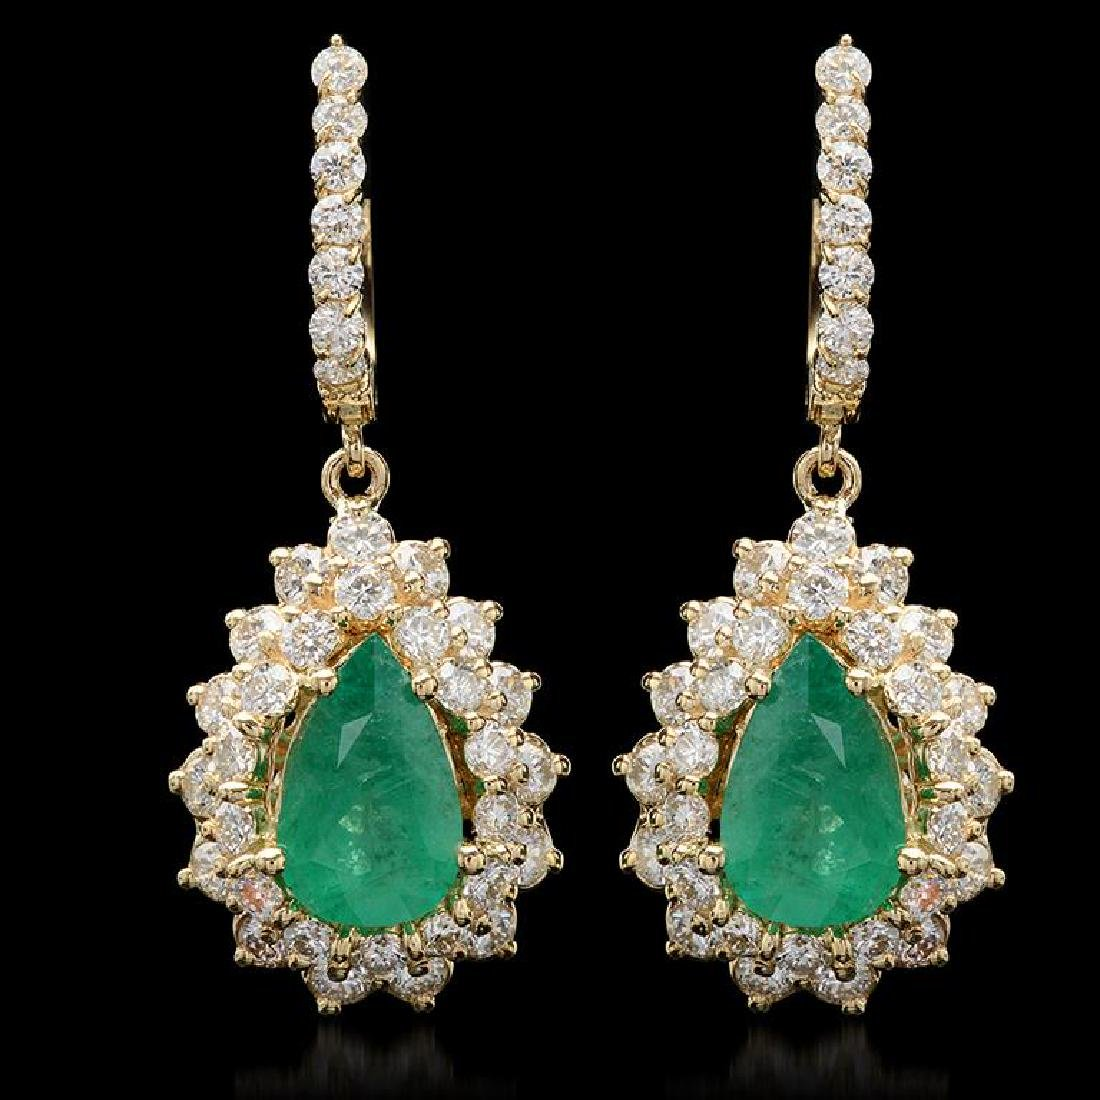 14K Gold 3.45ct Emerald 3.10ct Diamond Earrings